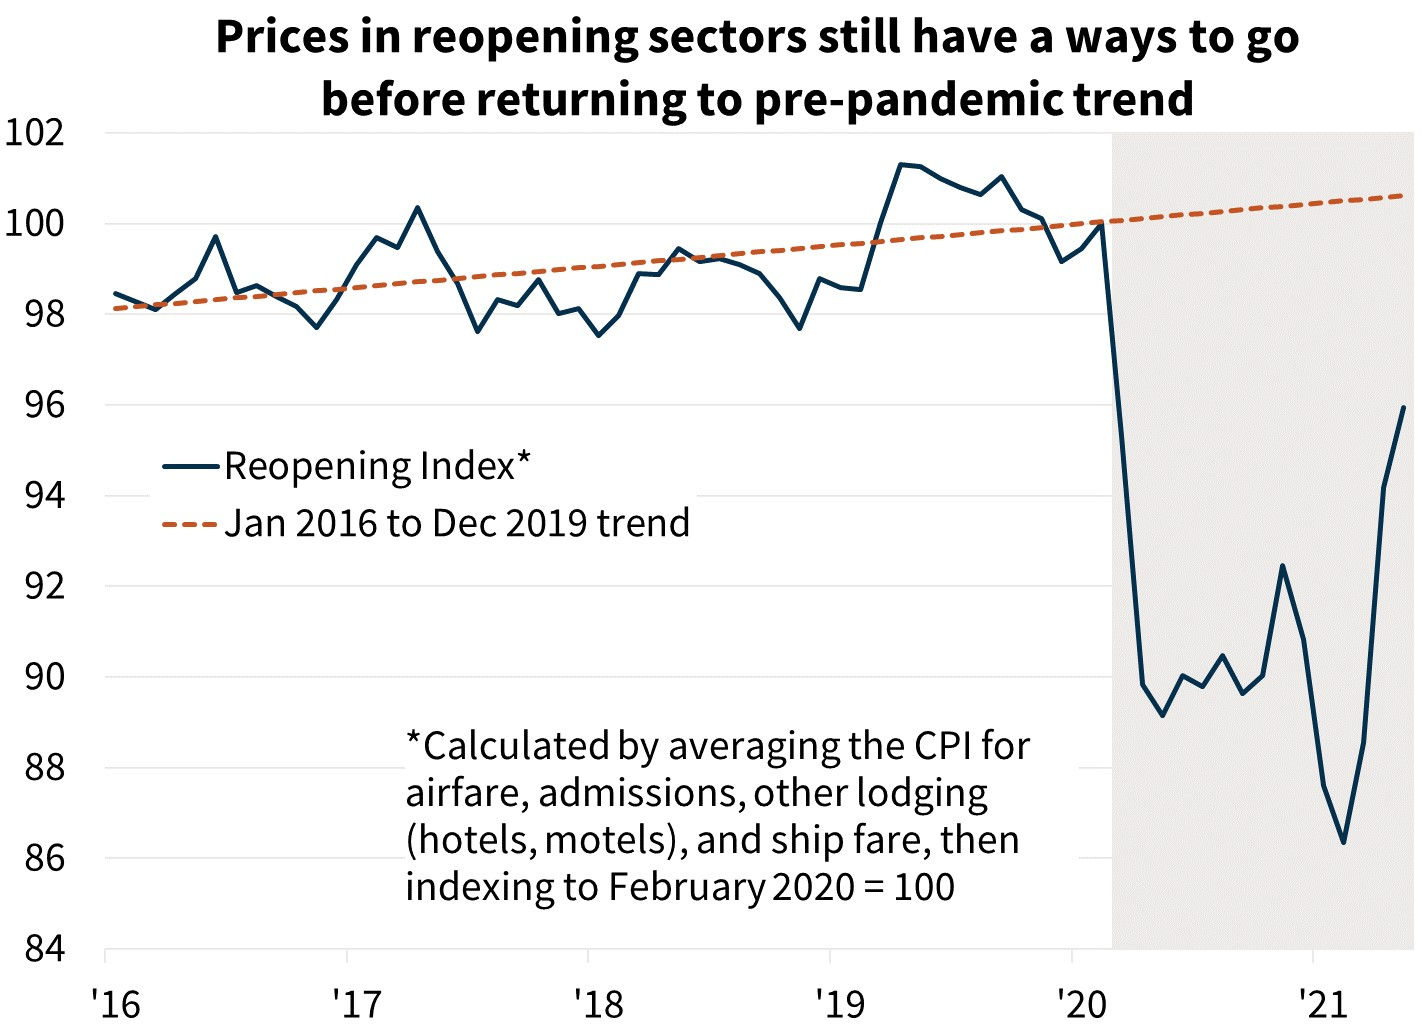 Prices in reopening sectors still have a ways to go before returning to pre-pandemic trends